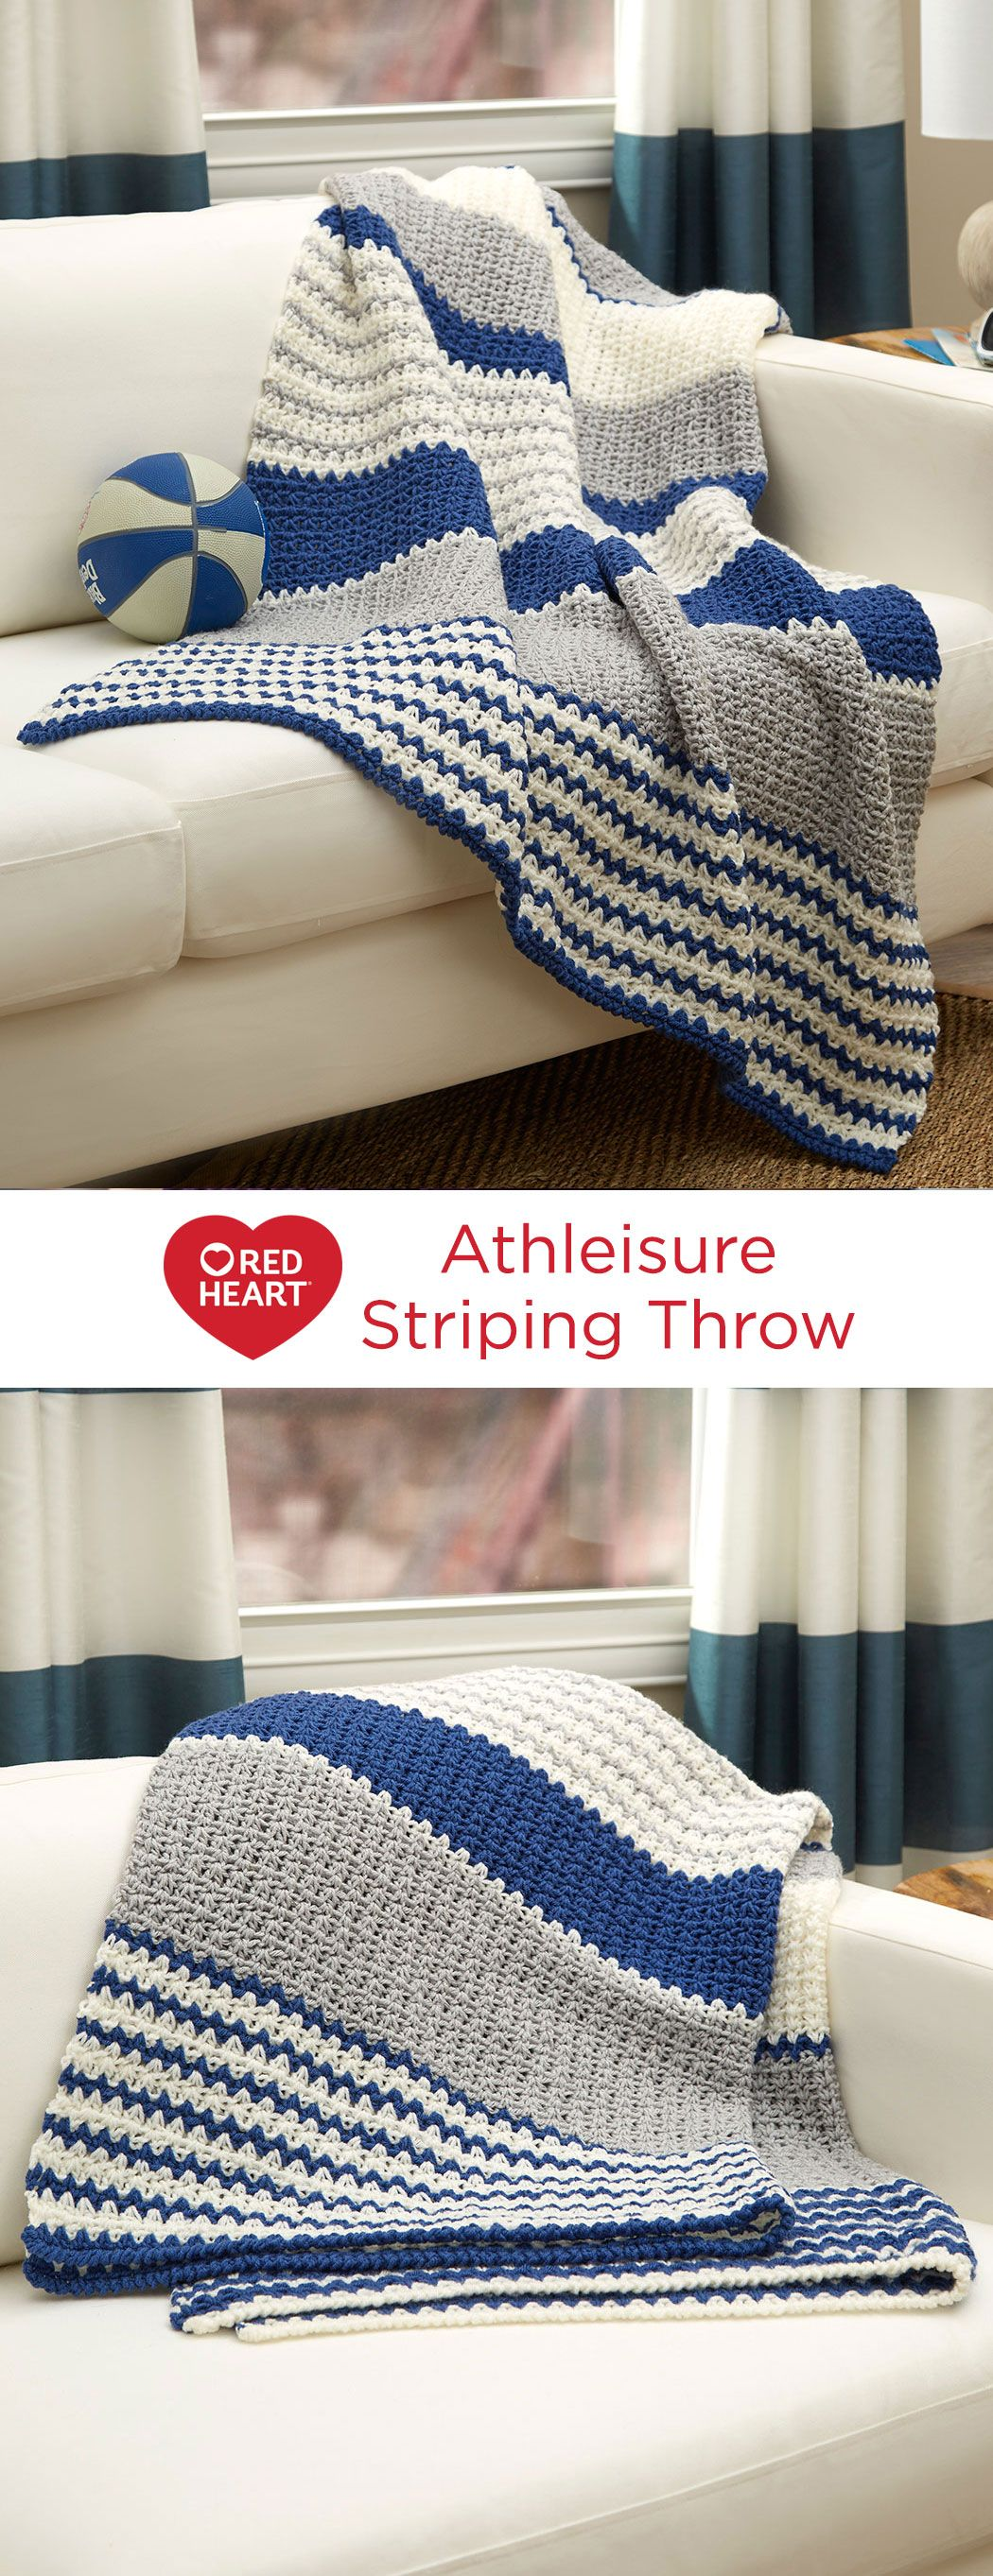 Athleisure striping throw free crochet pattern in red heart yarns athleisure striping throw free crochet pattern in red heart yarns sporty stripes in a bankloansurffo Images